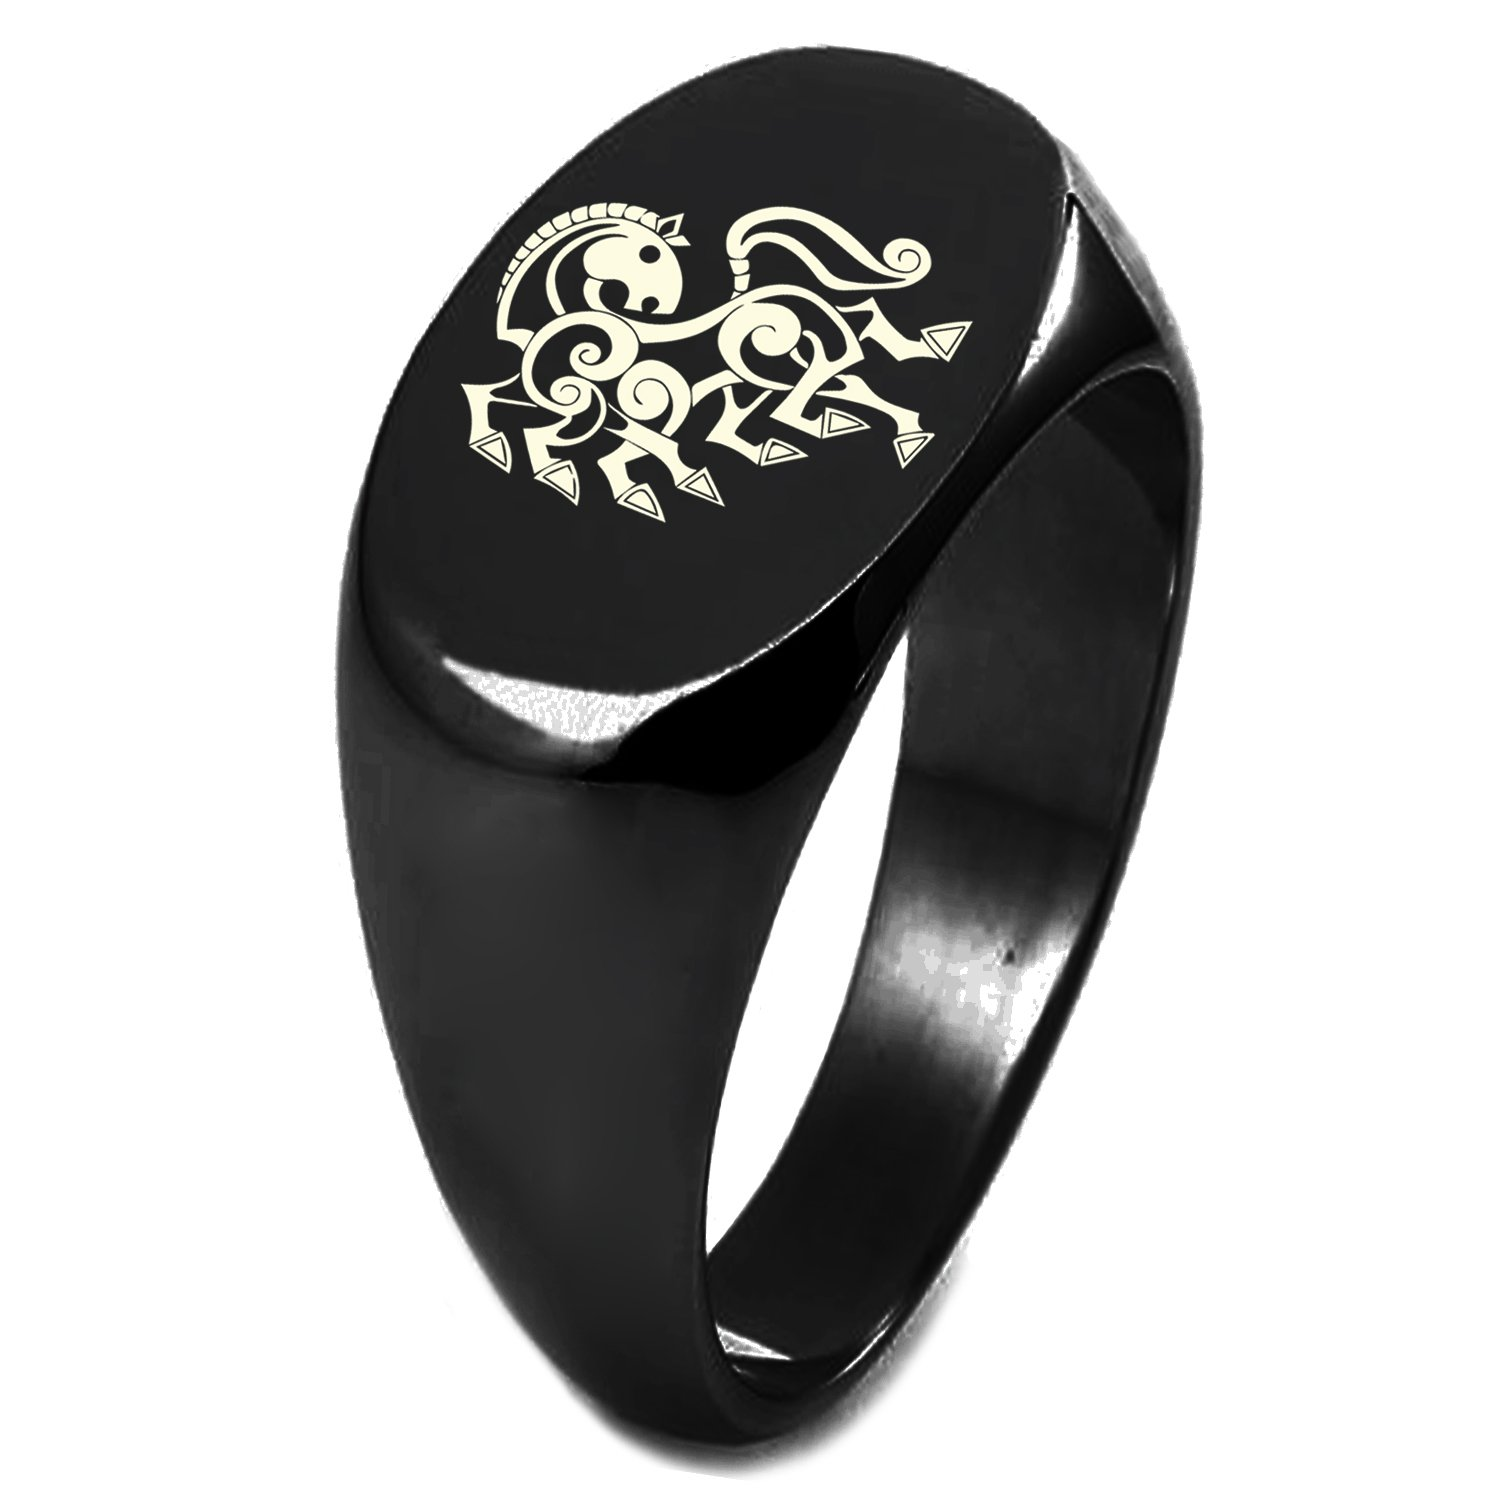 Black IP Plated Sterling Silver Odin's Sleipnir Horse Viking Norse Symbol Engraved Oval Flat Top Polished Ring, Size 7